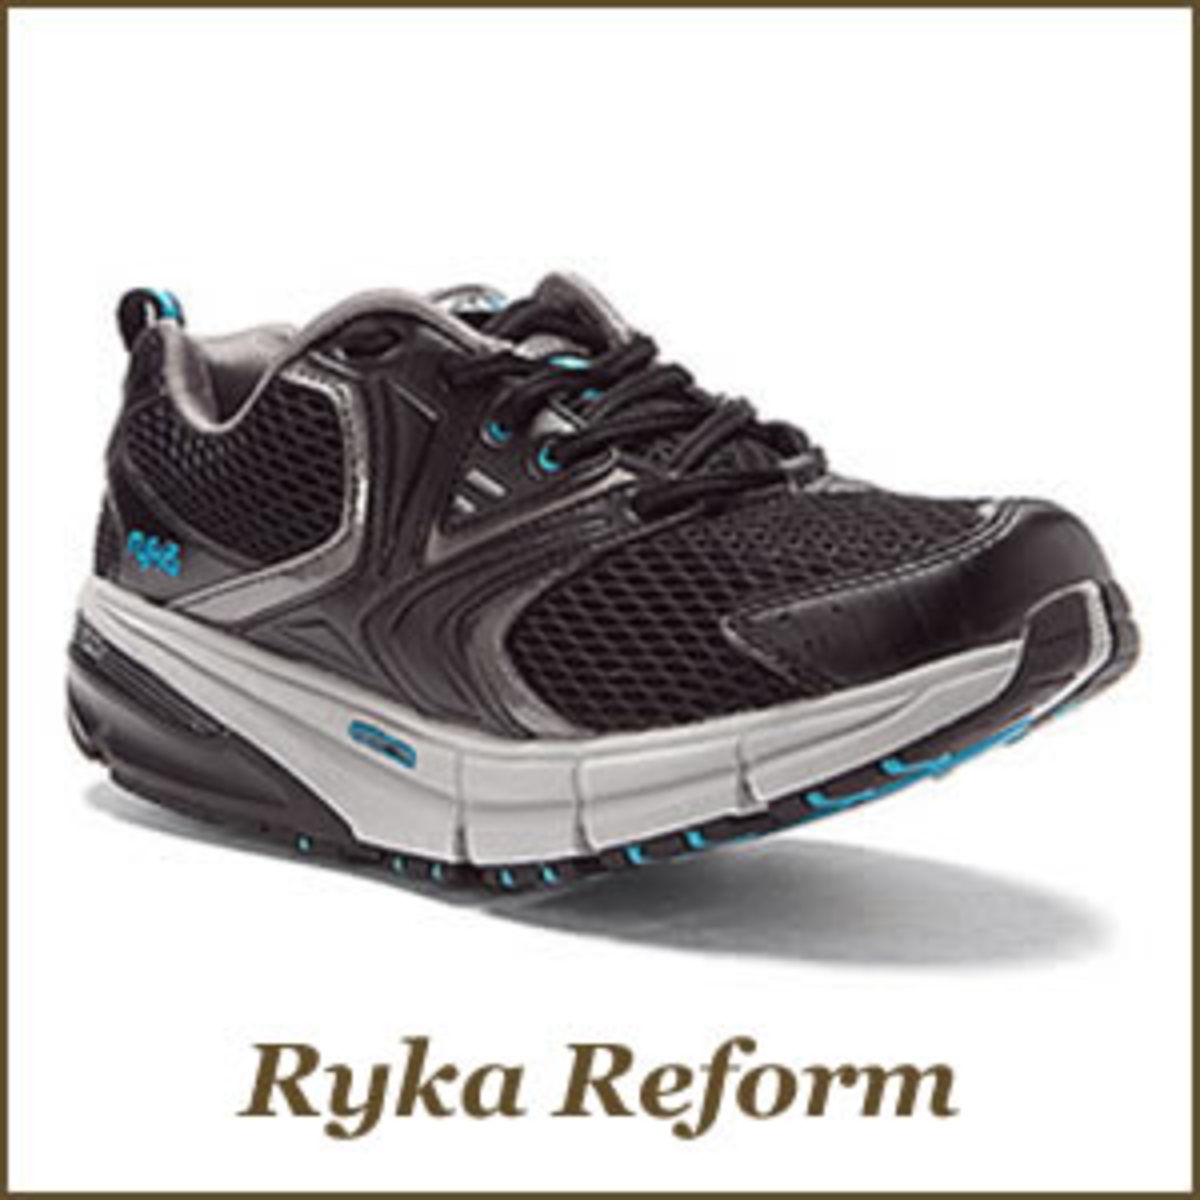 Ryka Reform - Some new snazzy styles now available